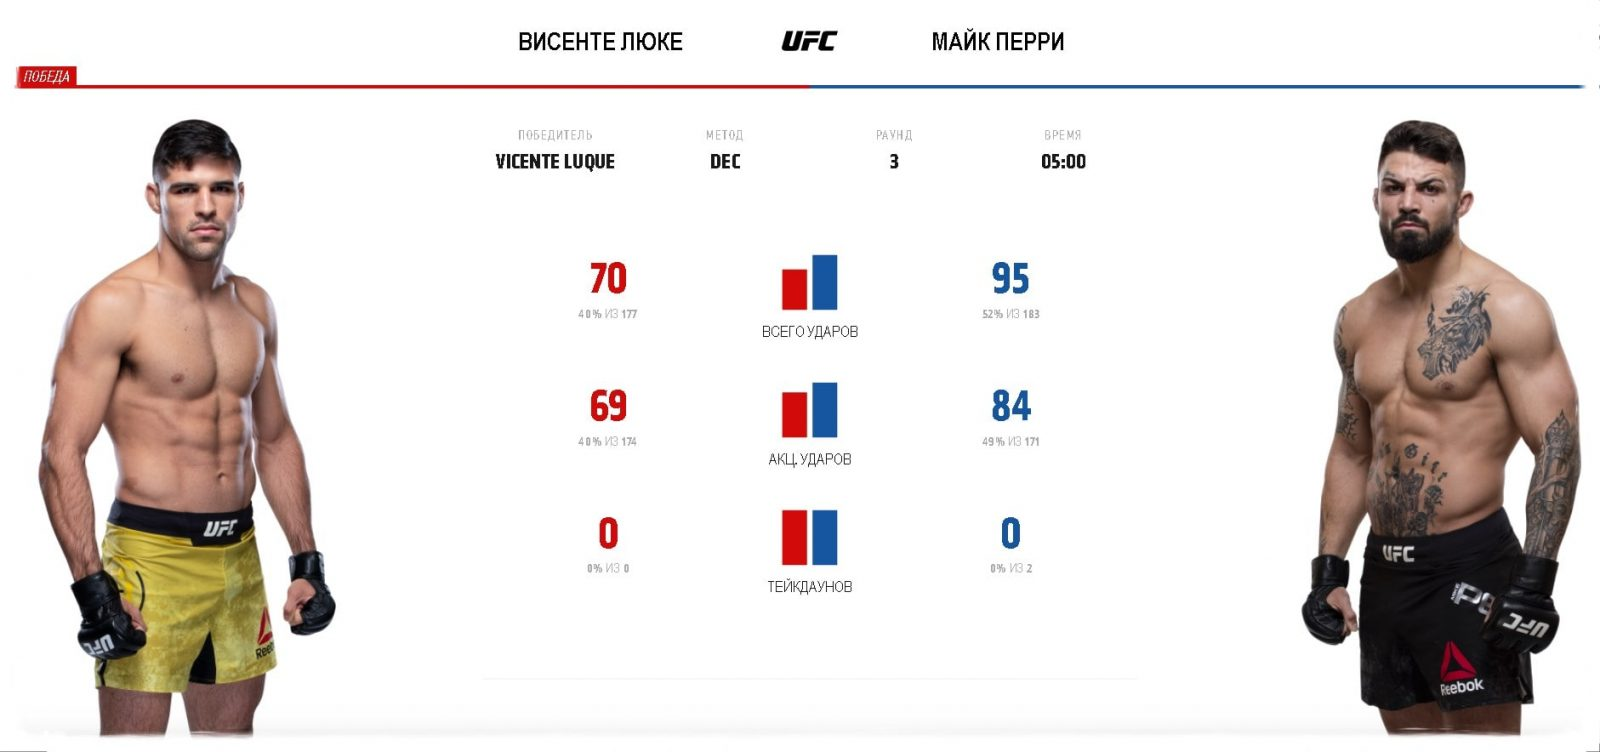 visente-luke-majk-perri-video-boya-ufc-fight-night-156-shevchenko-vs-carmouche-2_1